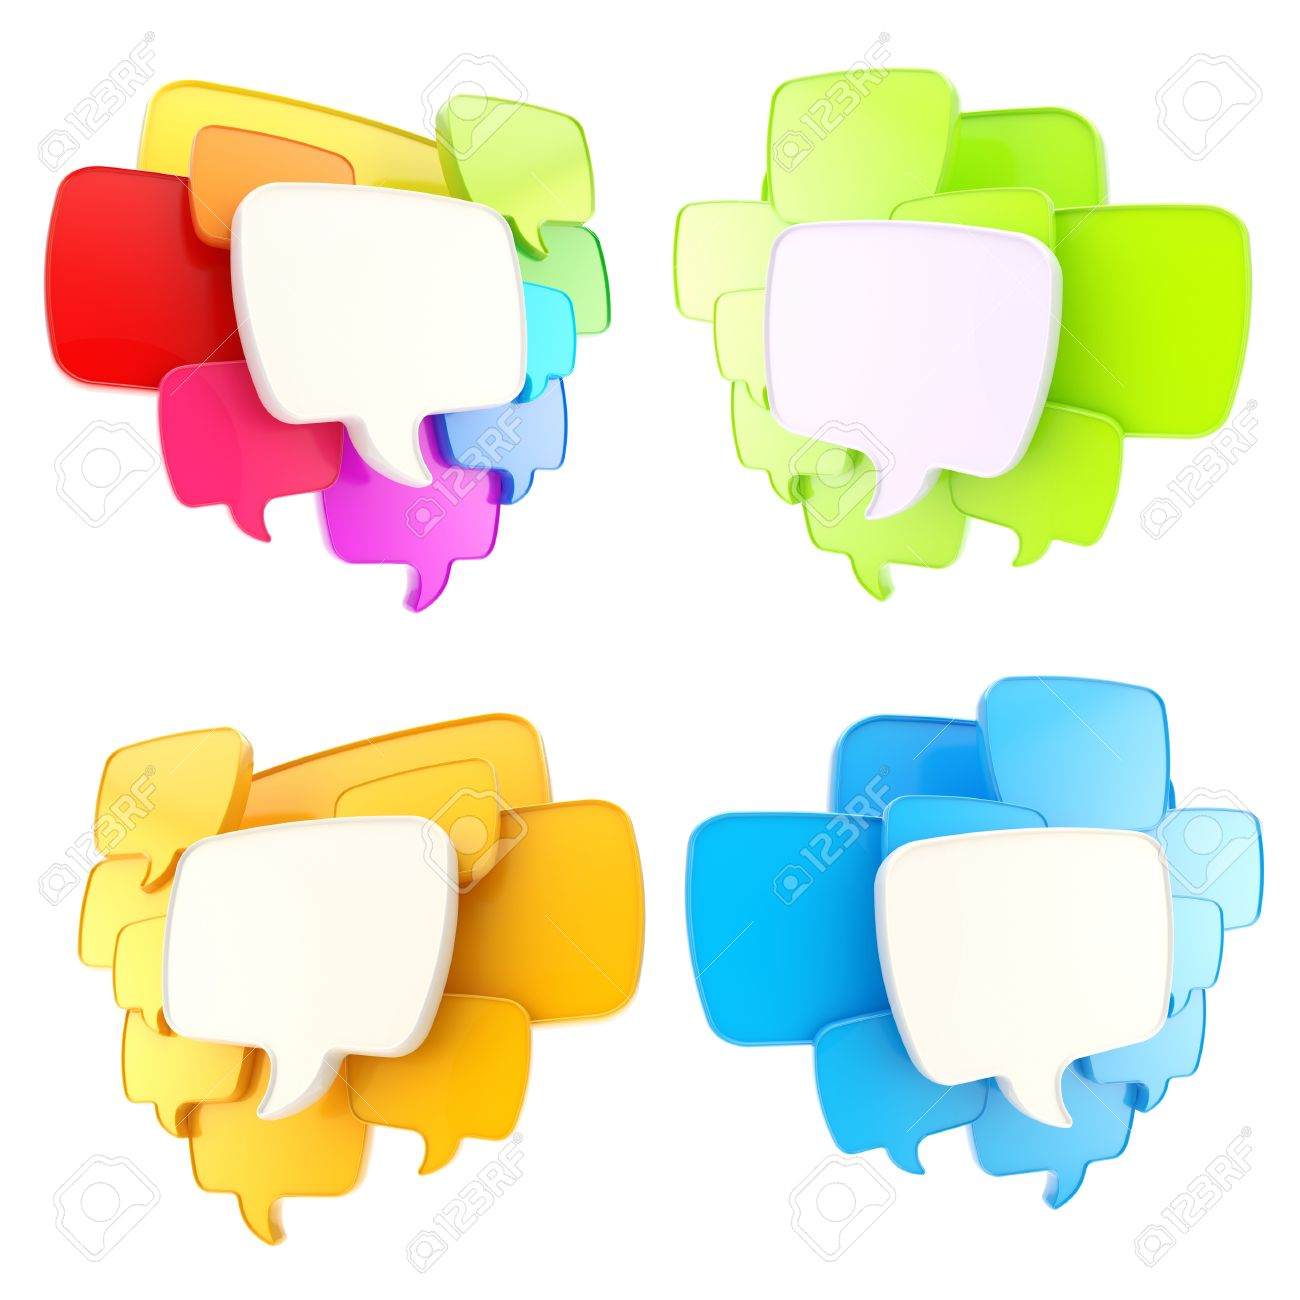 Cloud group of speech text bubbles compositions as copyspace banner plates isolated on white, set of four Stock Photo - 15971371